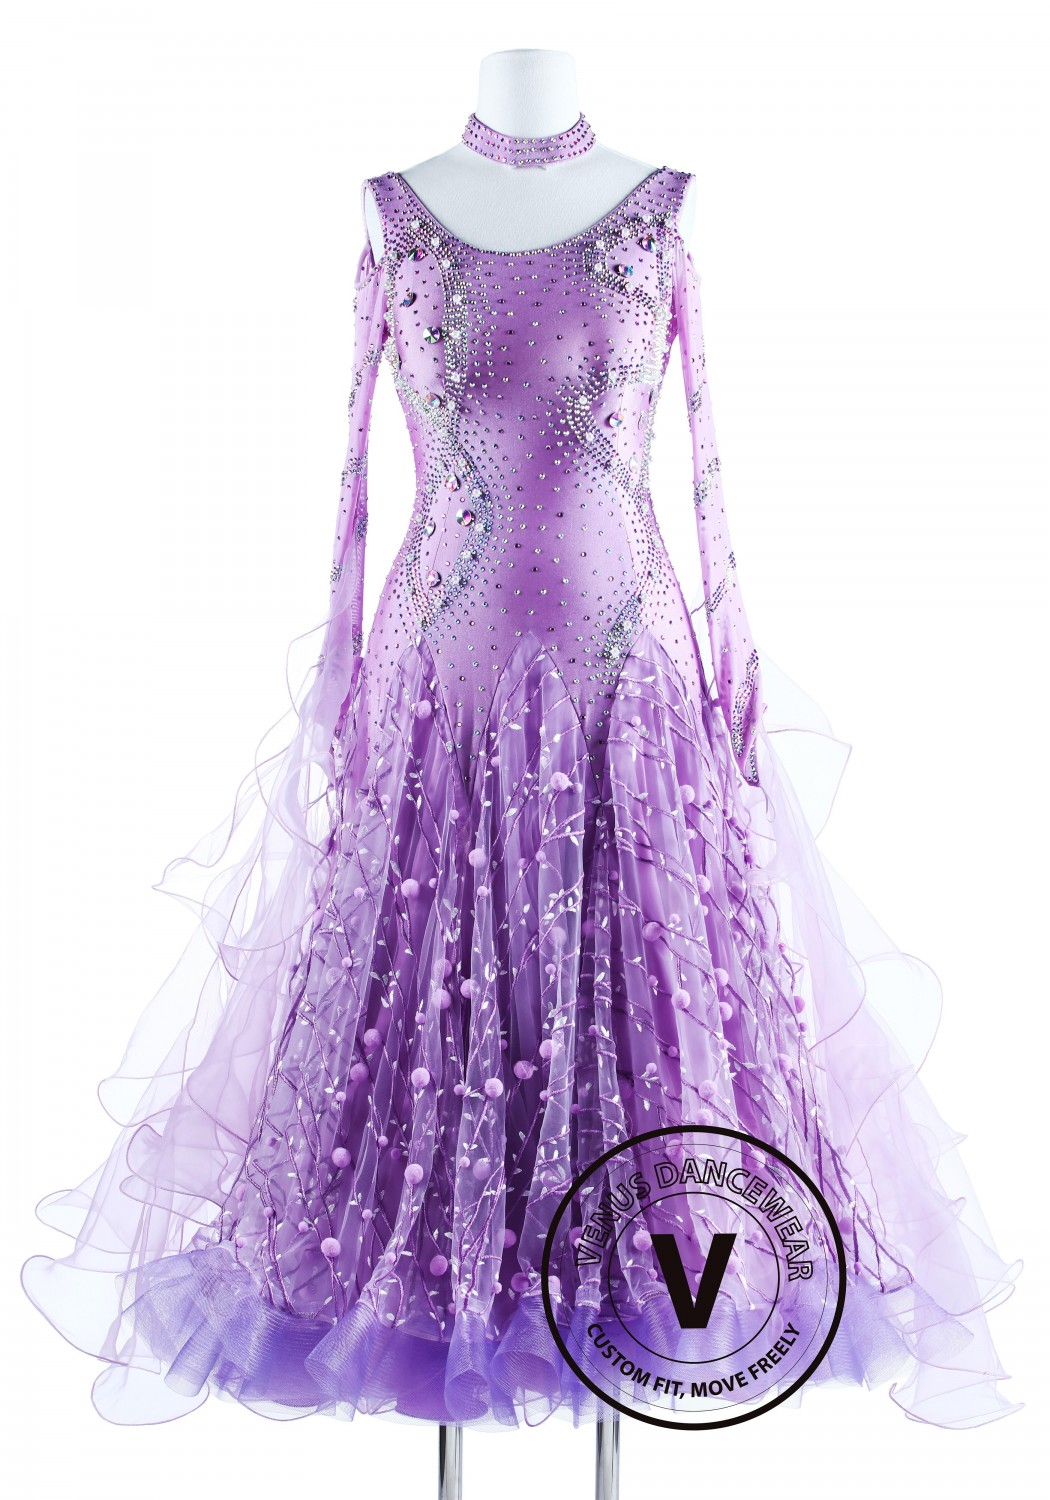 Lavender Snowball Luxury Foxtrot Waltz Quickstep Competition Dress